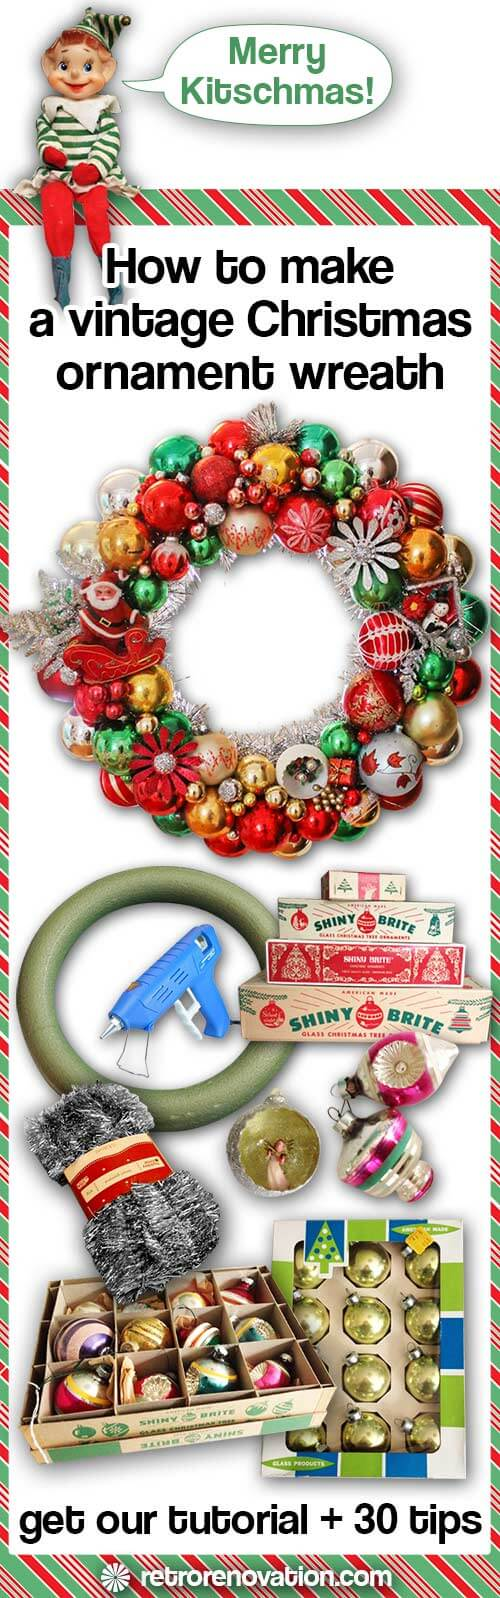 How to make vintage ornament wreath